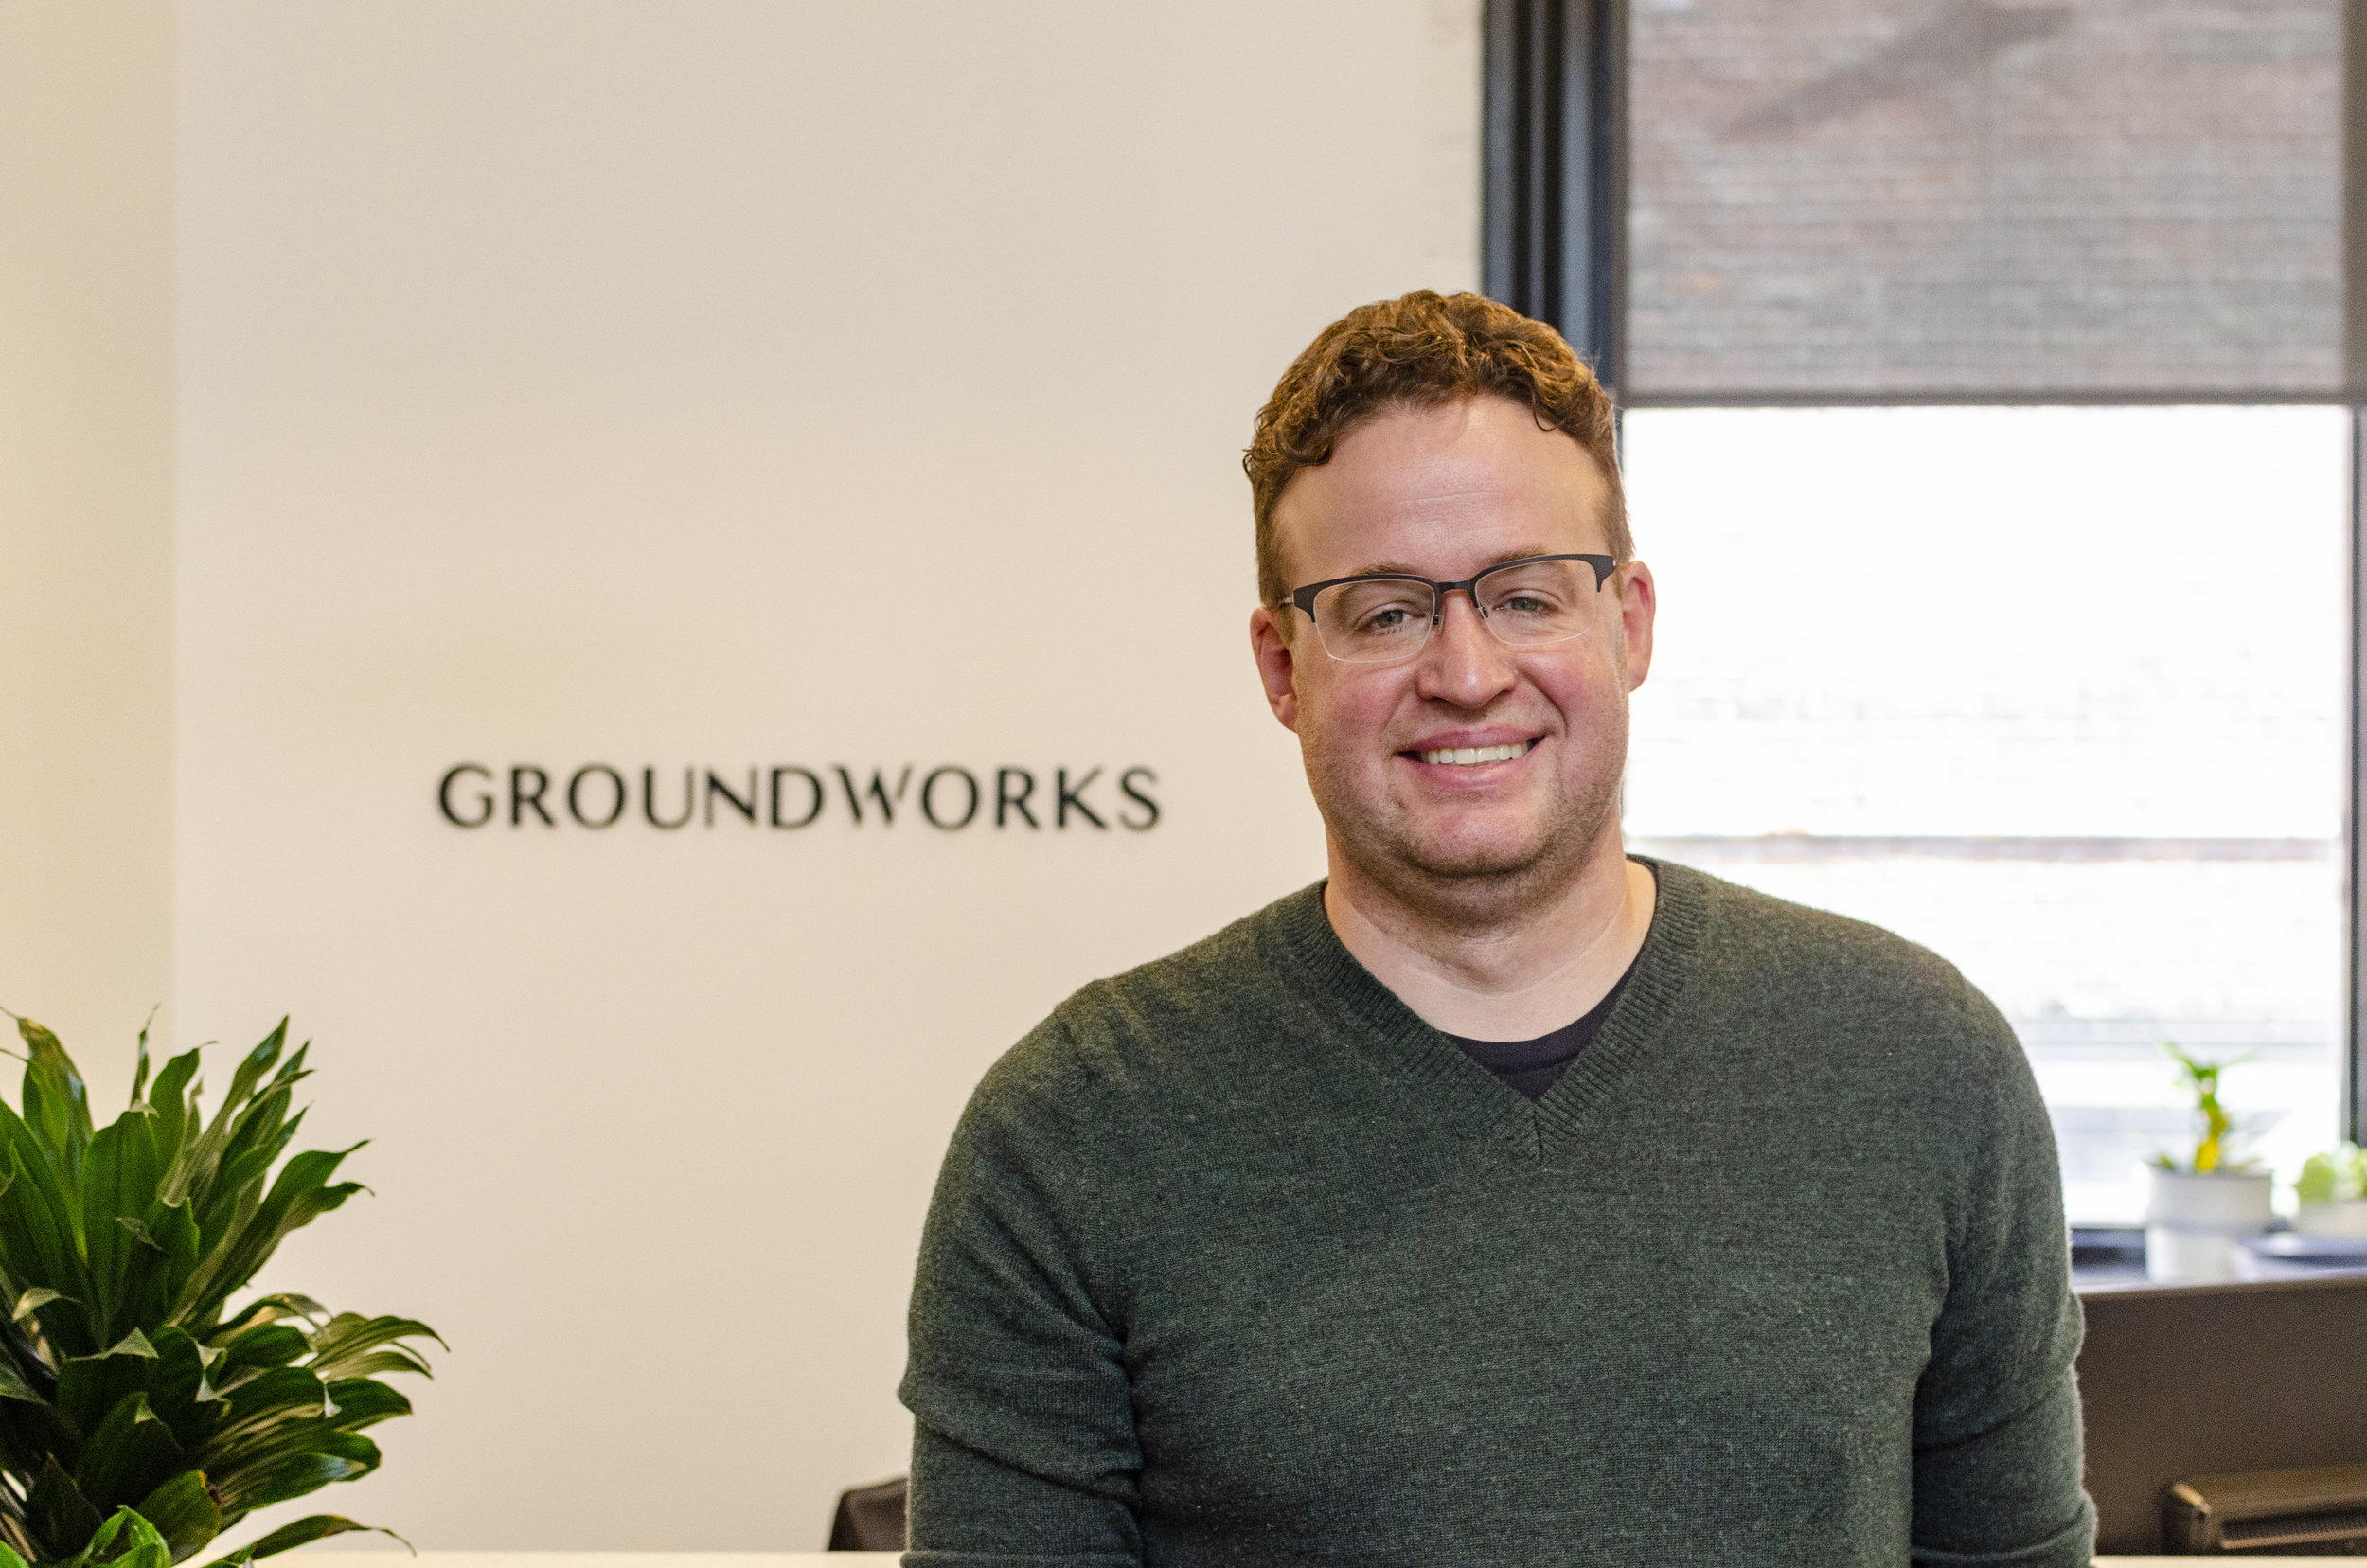 Jesse Sweet, Groundworks Industries' New Director of Licensing and Compliance